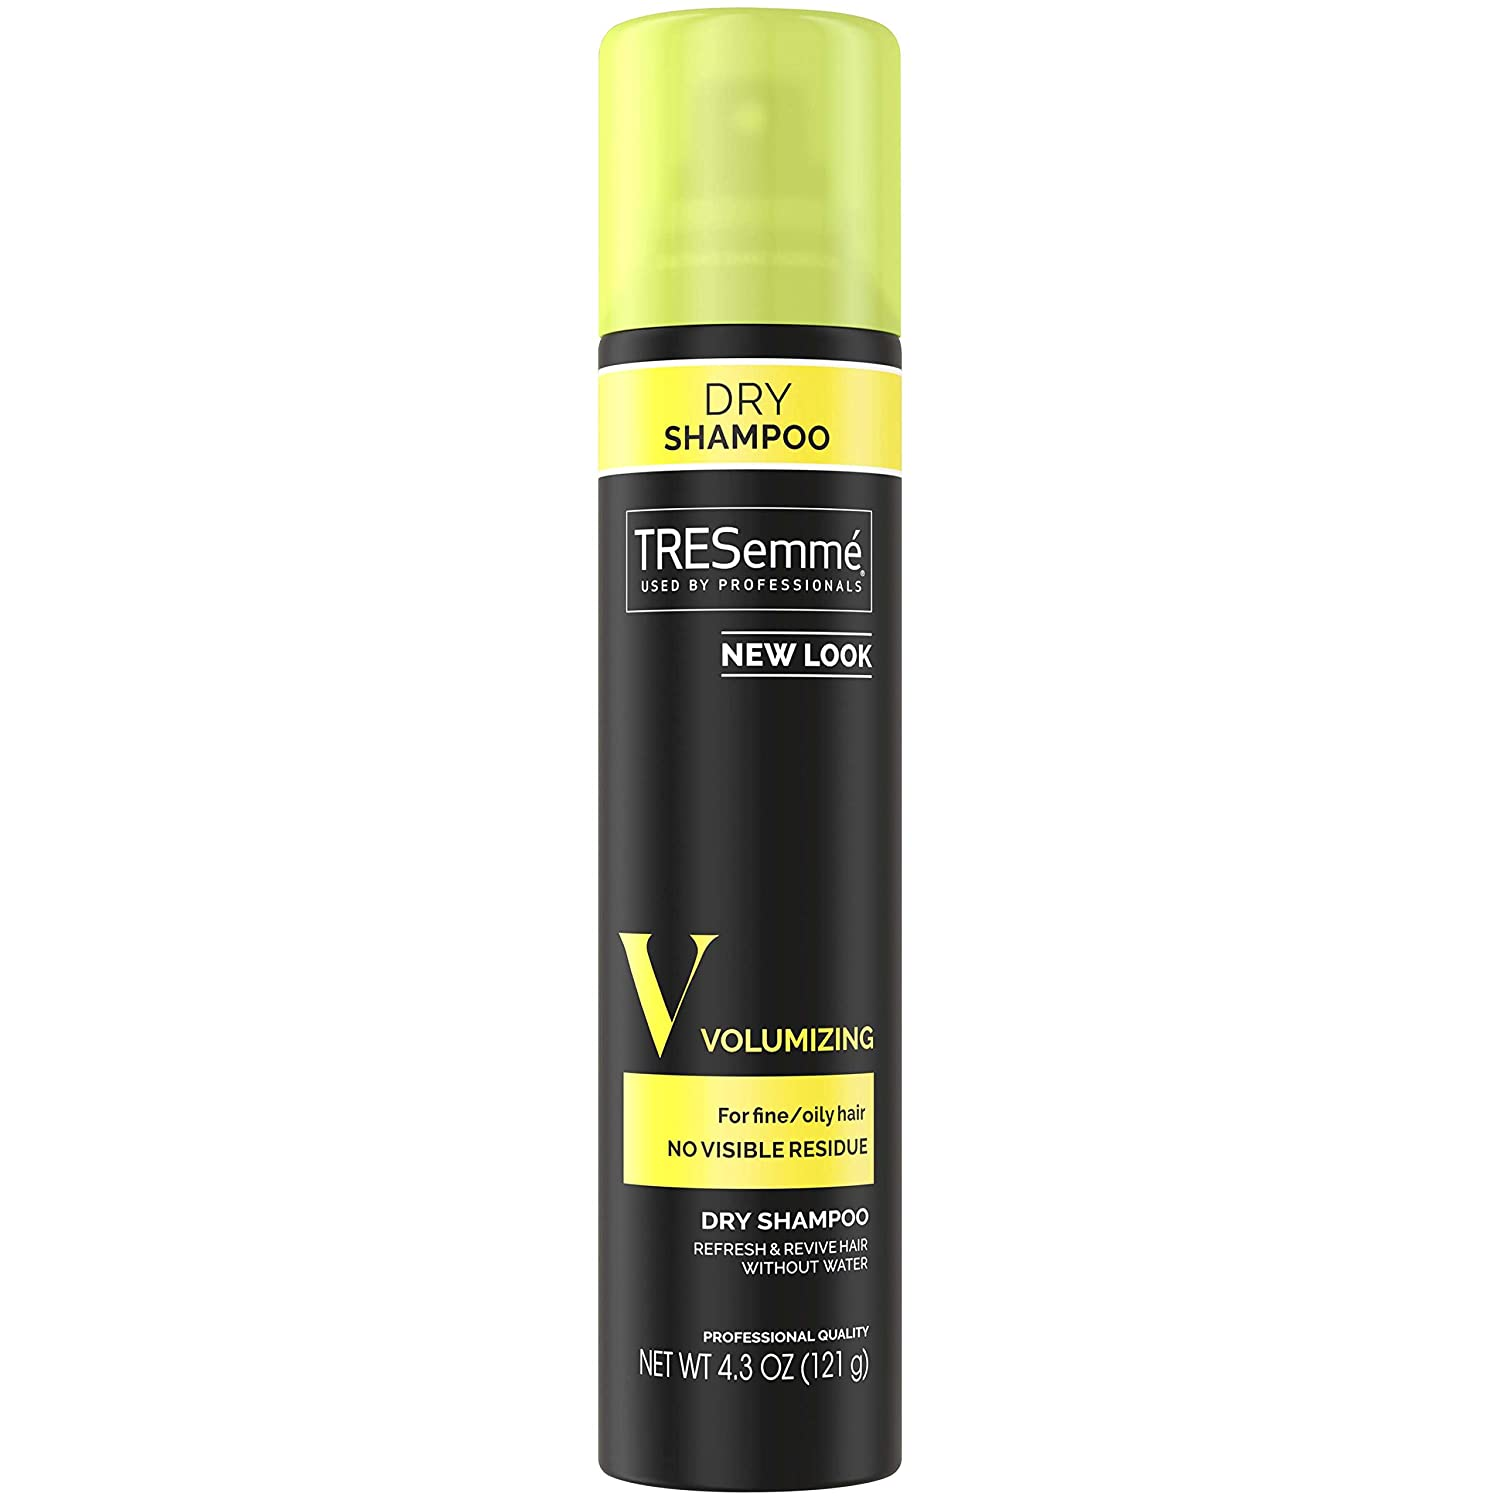 TRESemmé Fresh Start Dry Shampoo, Volumizing 4.3 oz Tresemme 10022400331611